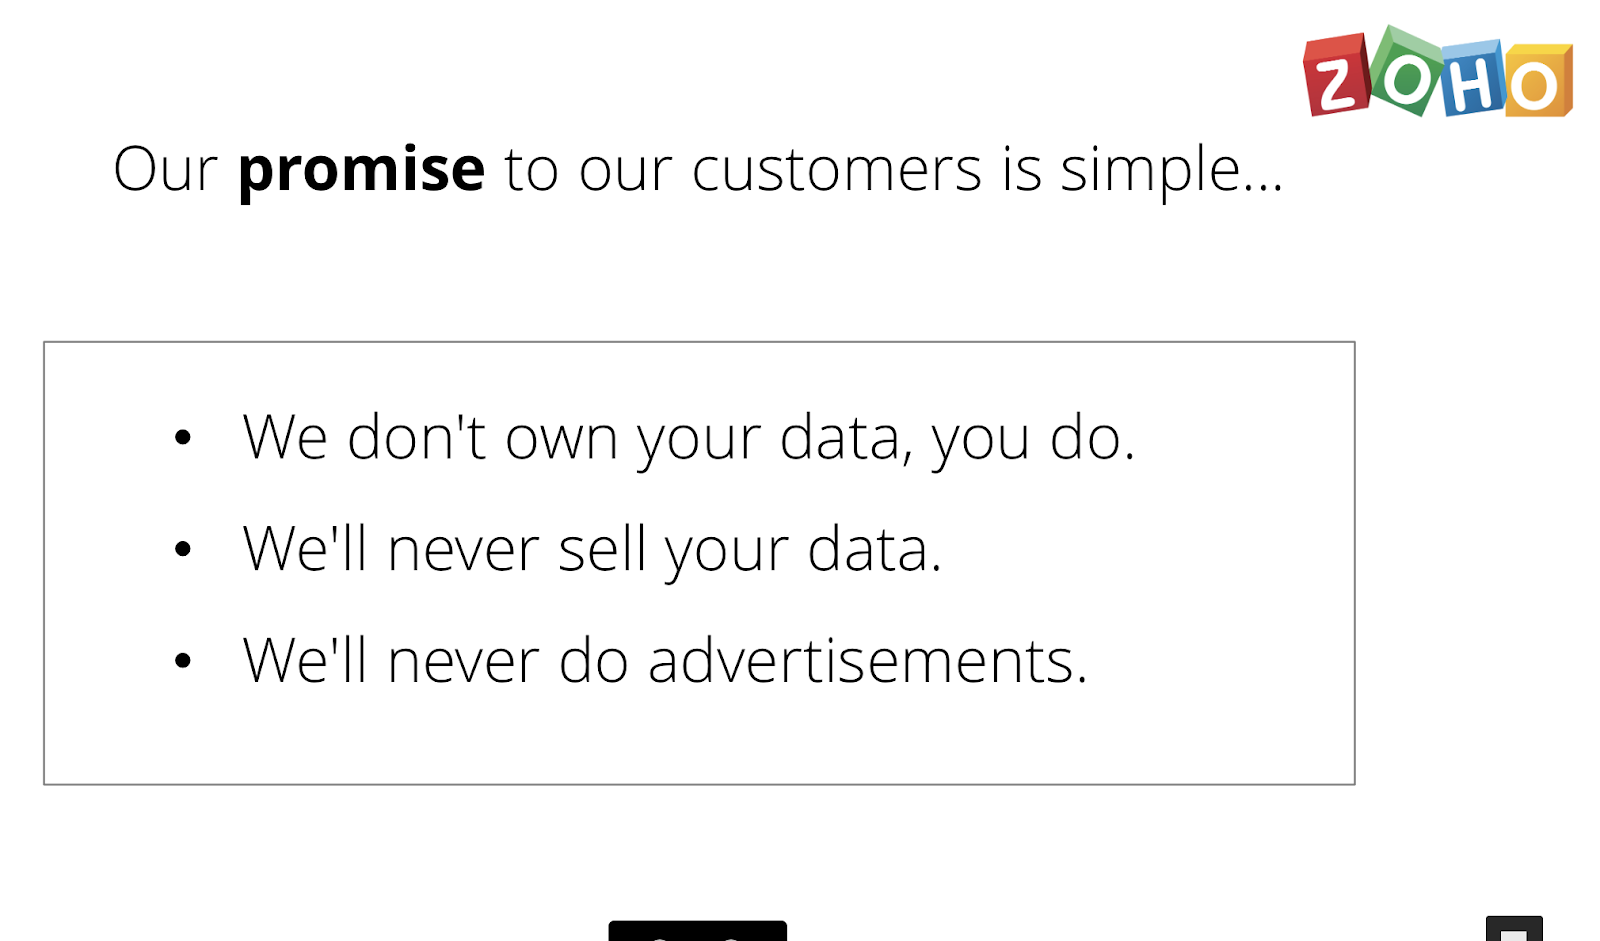 The Zoho promise to customers